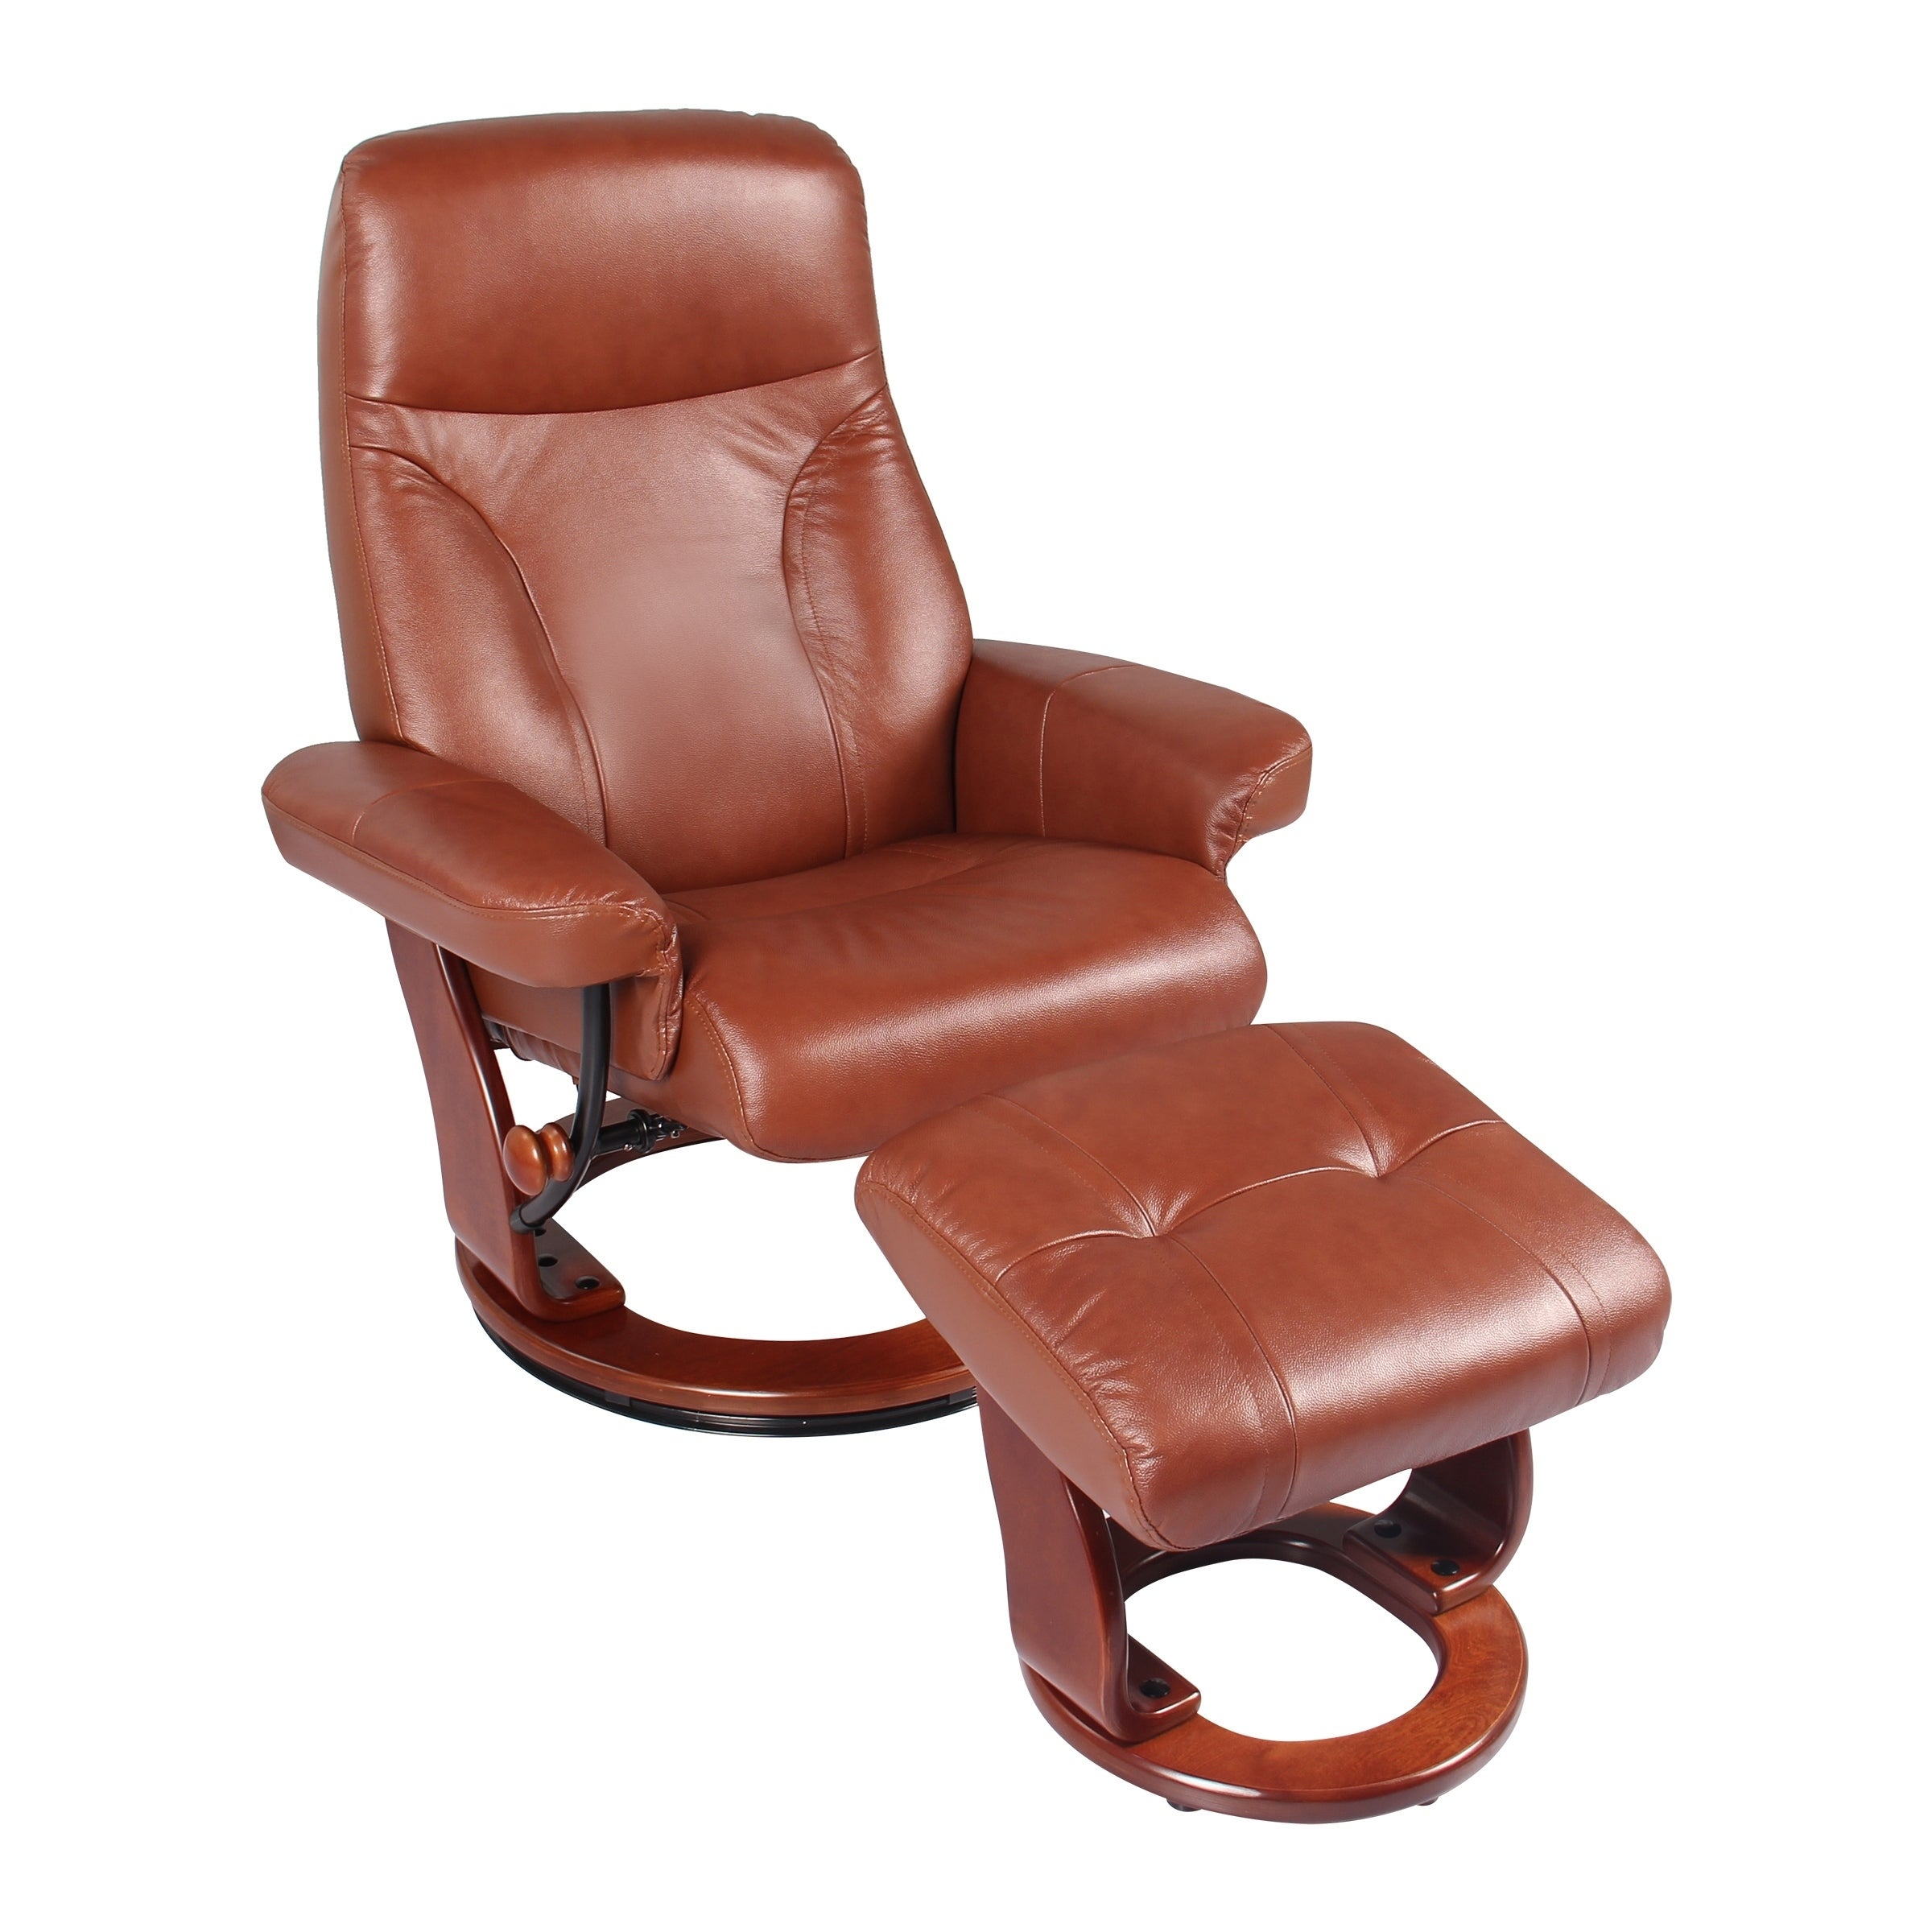 Almond Leather Recliner And Ottoman Black Hazel In 2019